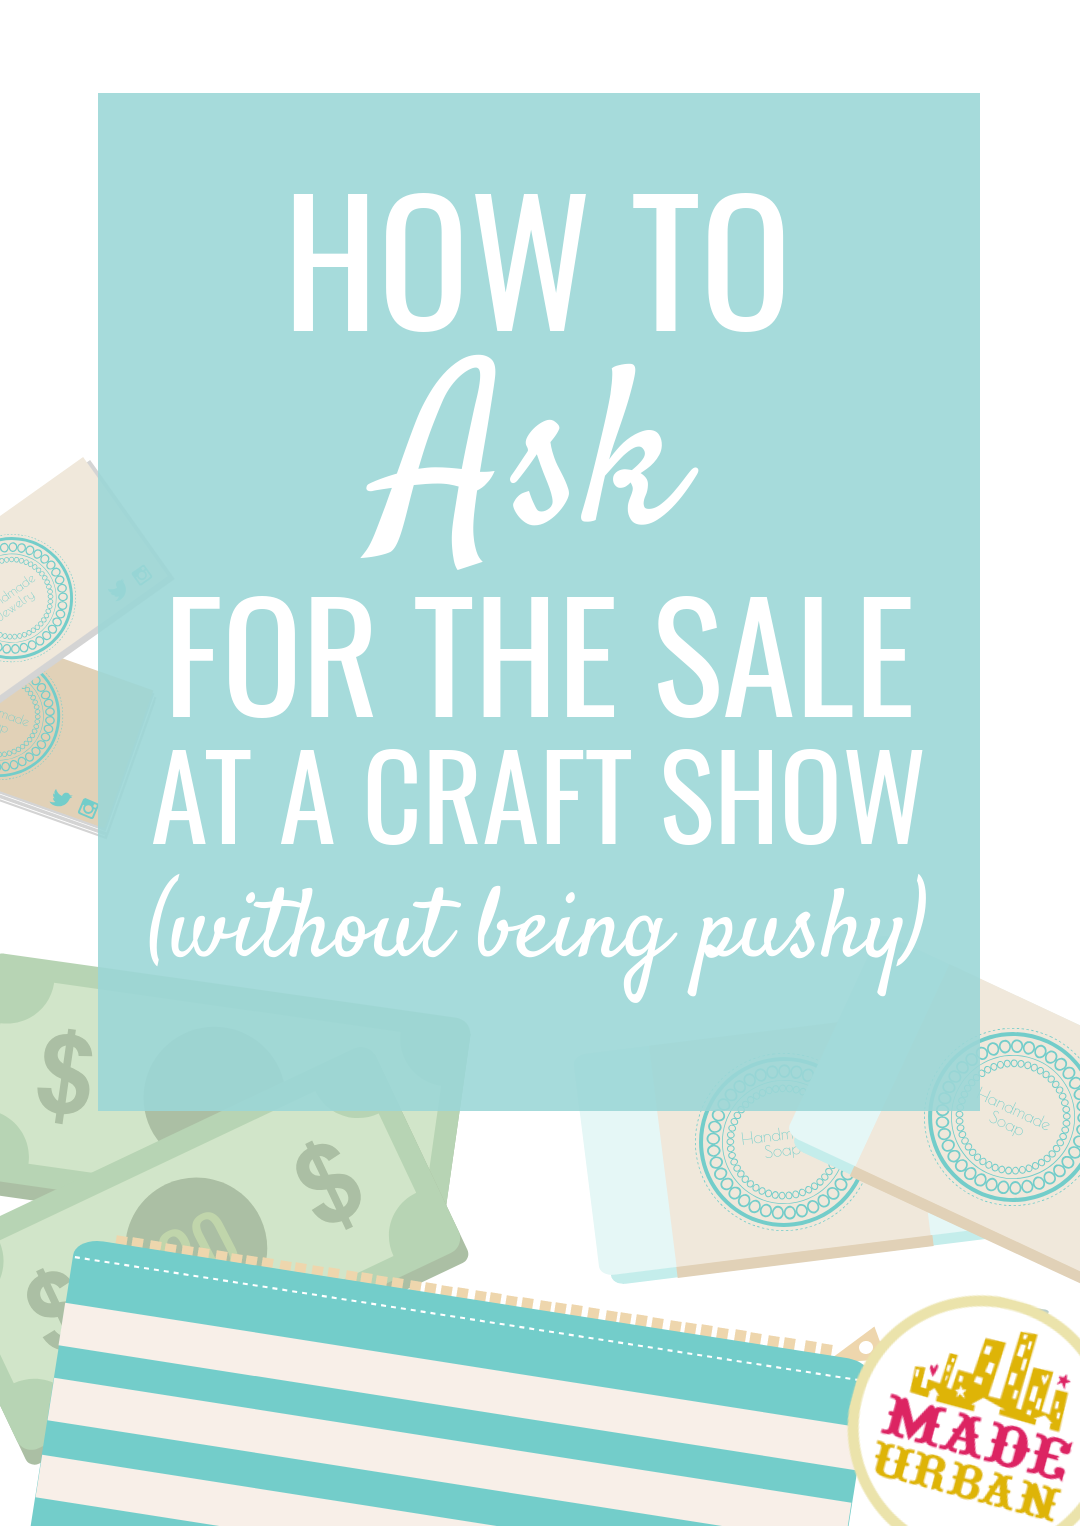 It can feel uncomfortable to ask for a sale but it doesn't have to come across as pushy and it's so incredibly important to your business. Let me explain why a few simply words can boost your sales and why they're absolutely necessary (and not being pushy at all)